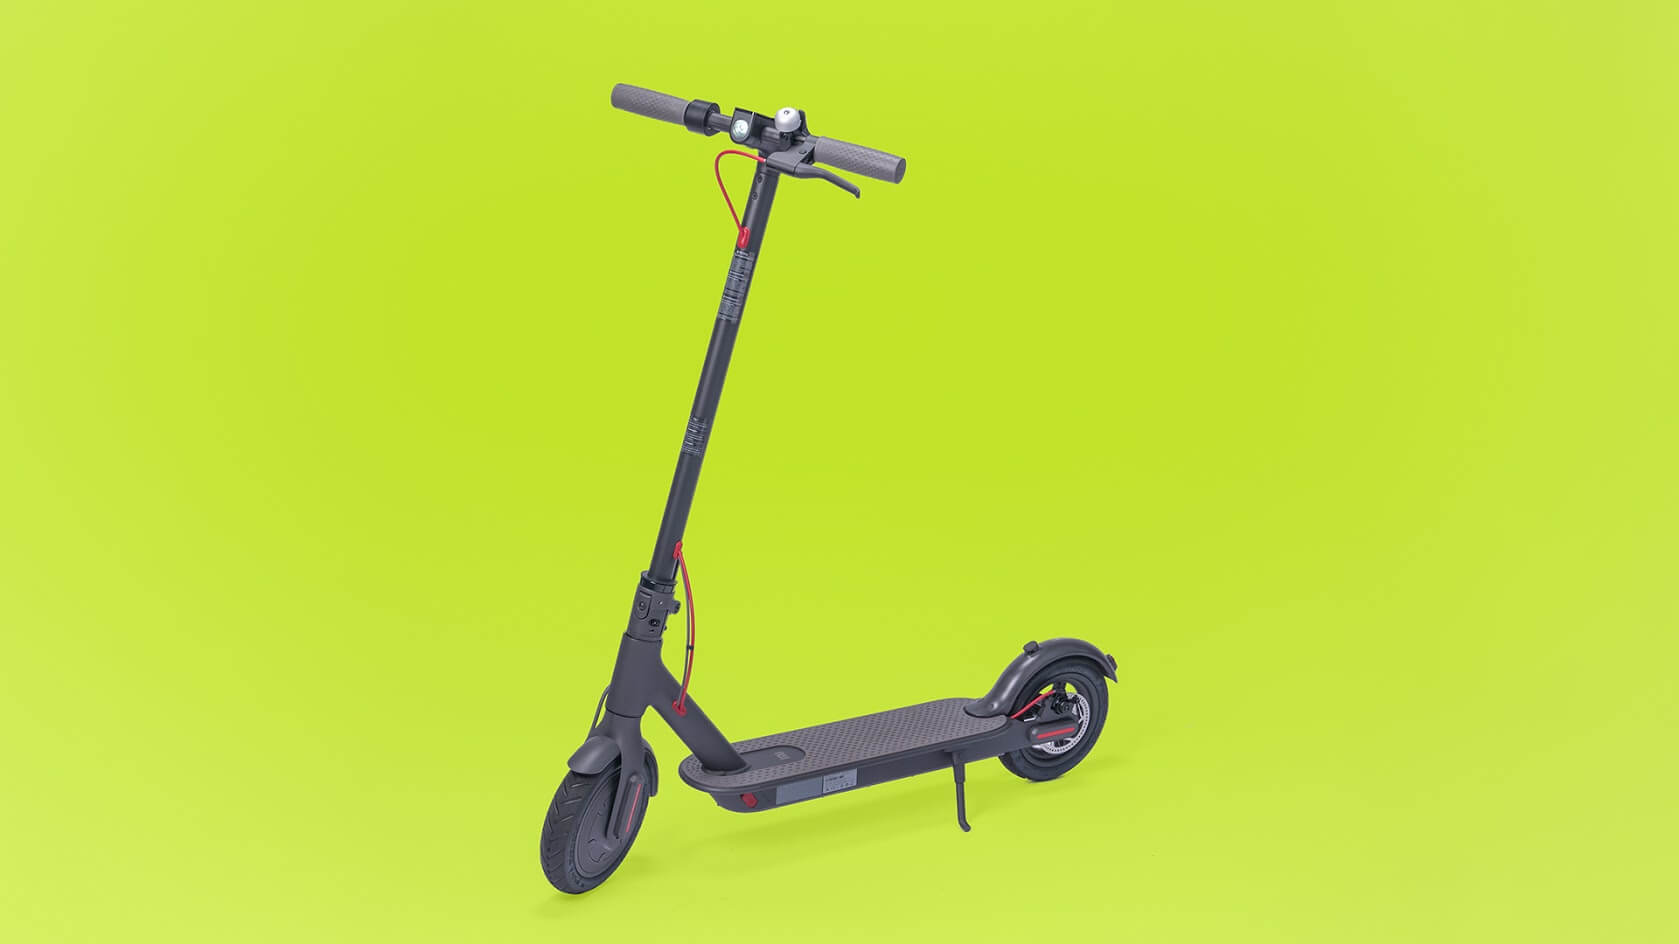 Meet the Xiaomi Mi electric scooter - Newegg Insider